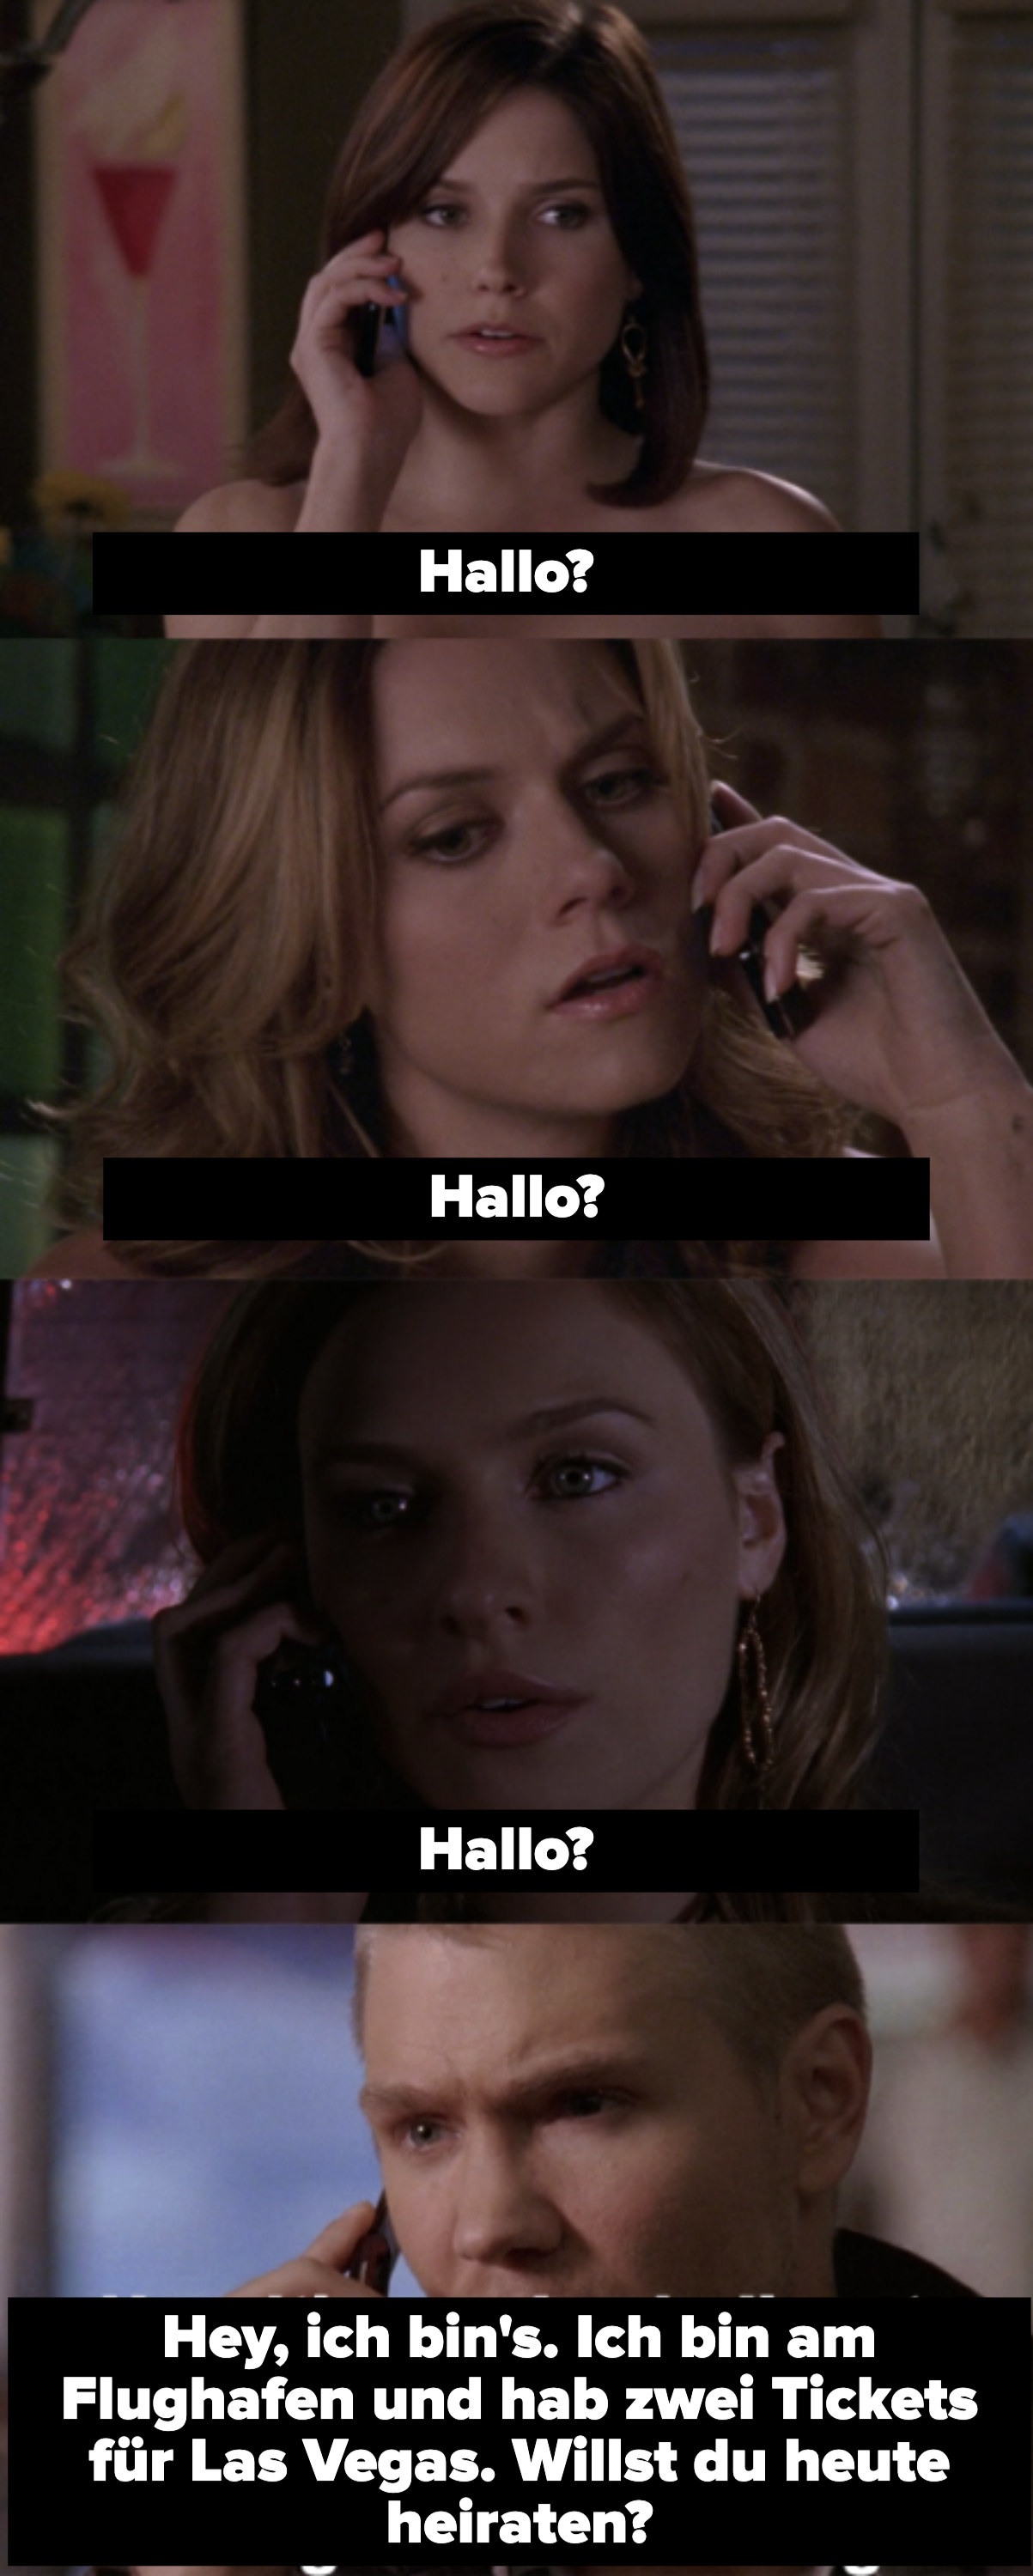 """Brooke, Peyton, and Lindsay answering the phone and saying """"hello?"""", then Lucas saying """"hey, it's me. Look, I'm at the airport and I've got 2 tickets to Las Vegas. Do you wanna get married tonight?"""" but you don't know which he's talking to."""